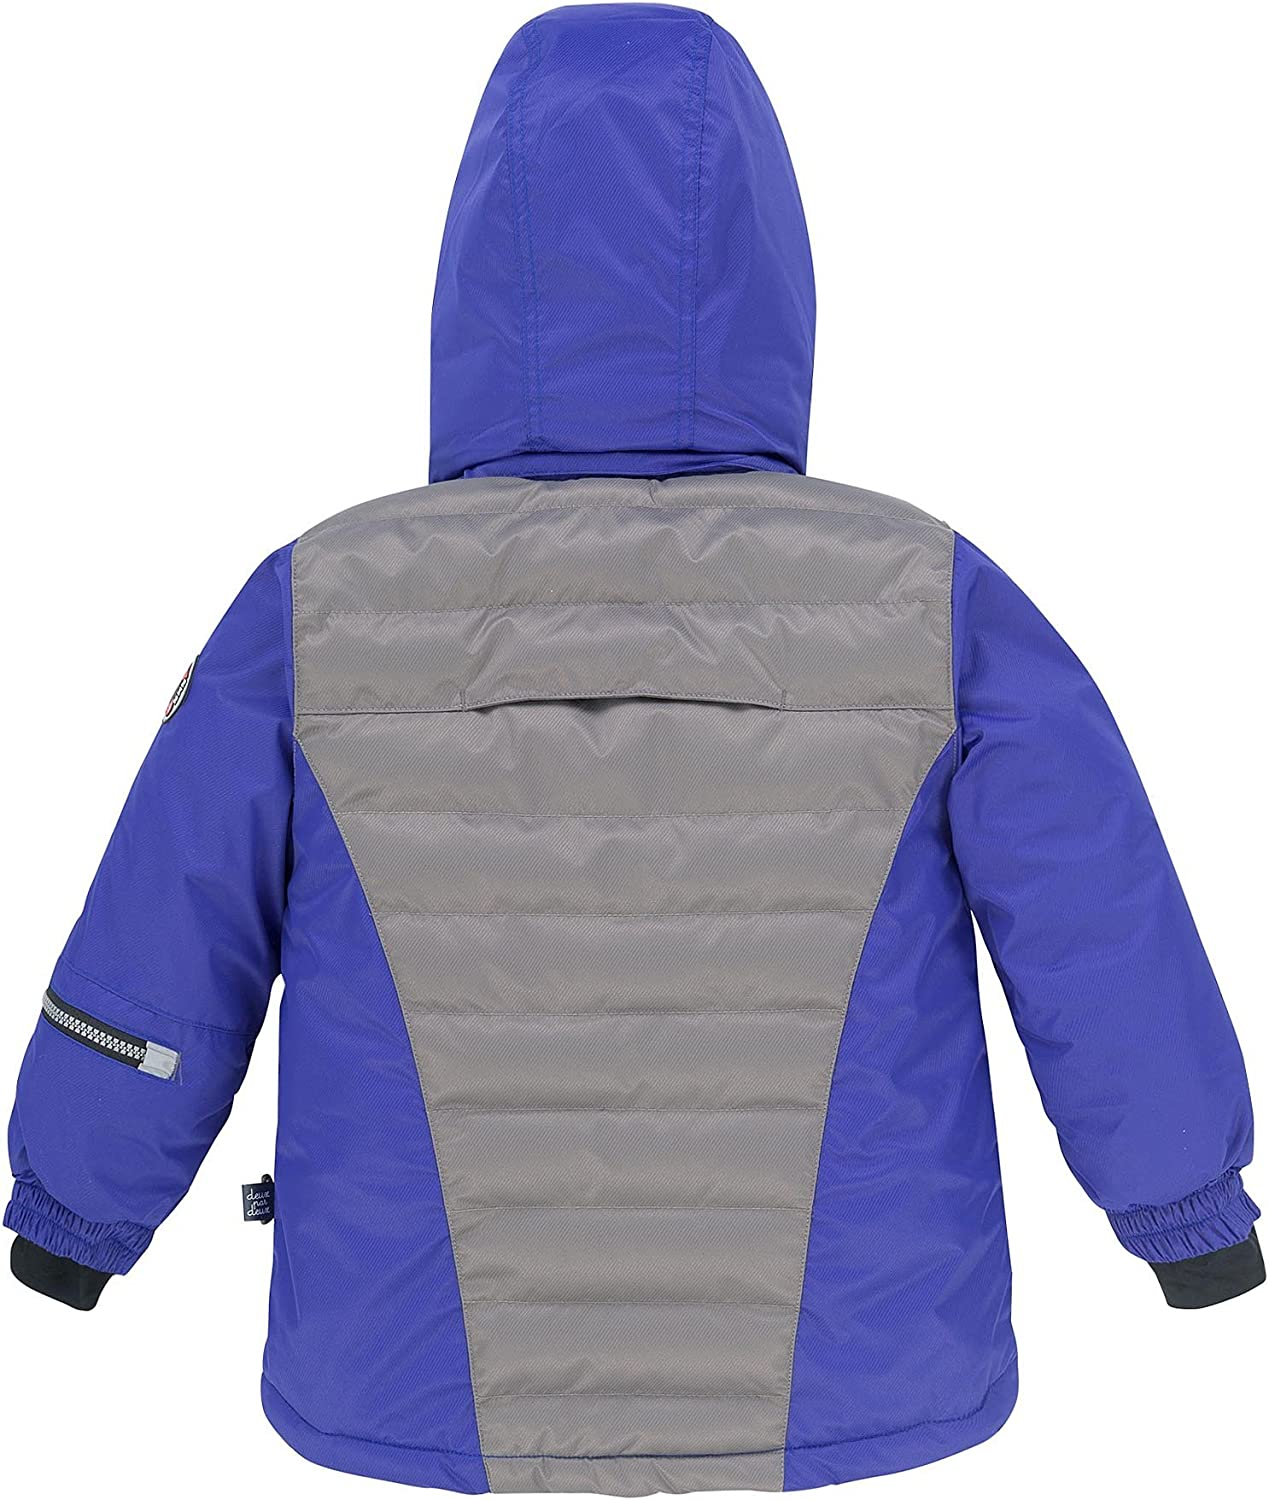 Deux par Deux Boys 2-Piece Snowsuit Off The Mark Blue Sizes 5-14